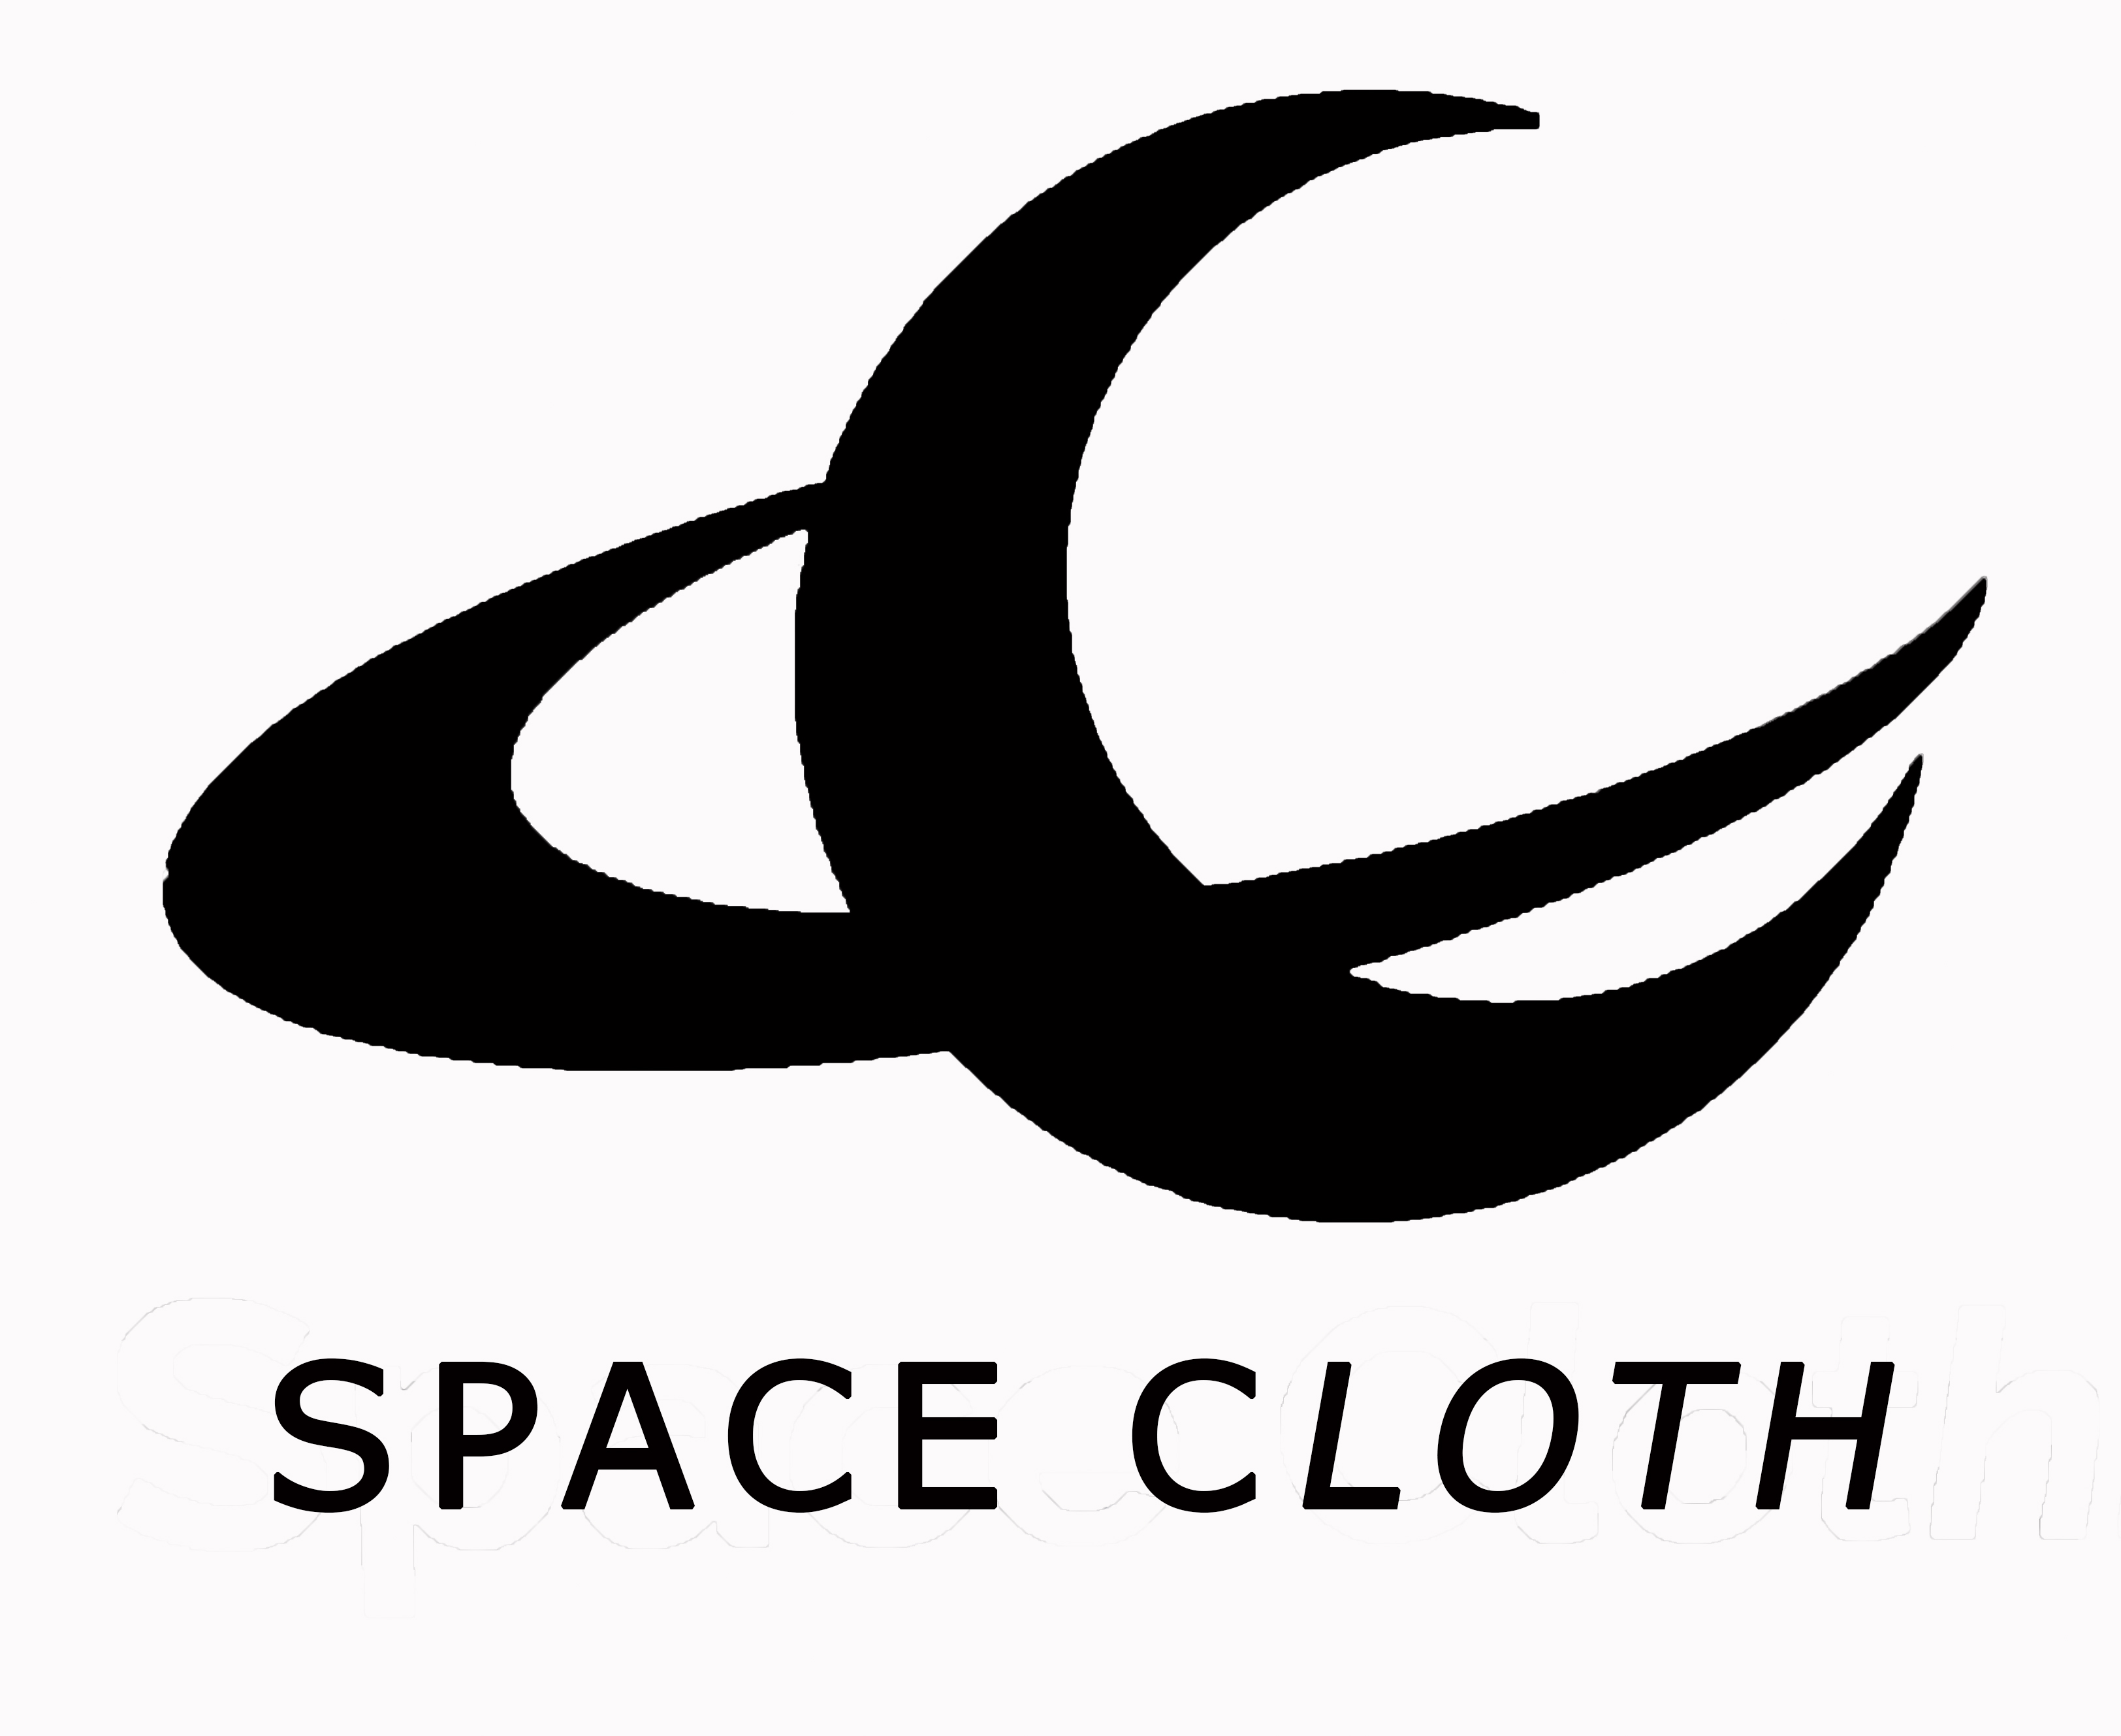 Space cloth